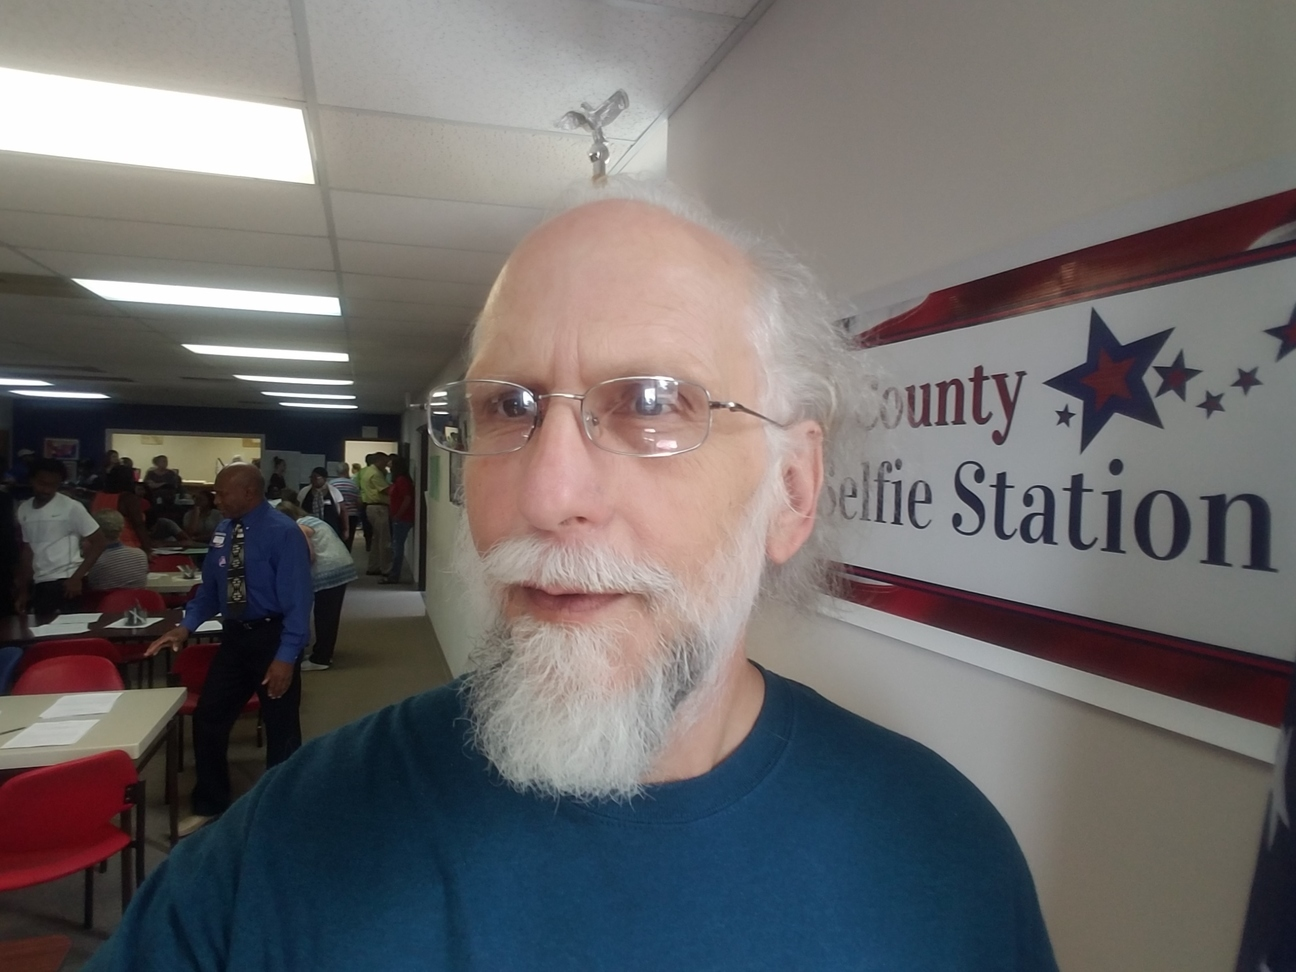 1296x972 Lots of voters, in Voted, by John S. Quarterman, 4 November 2016